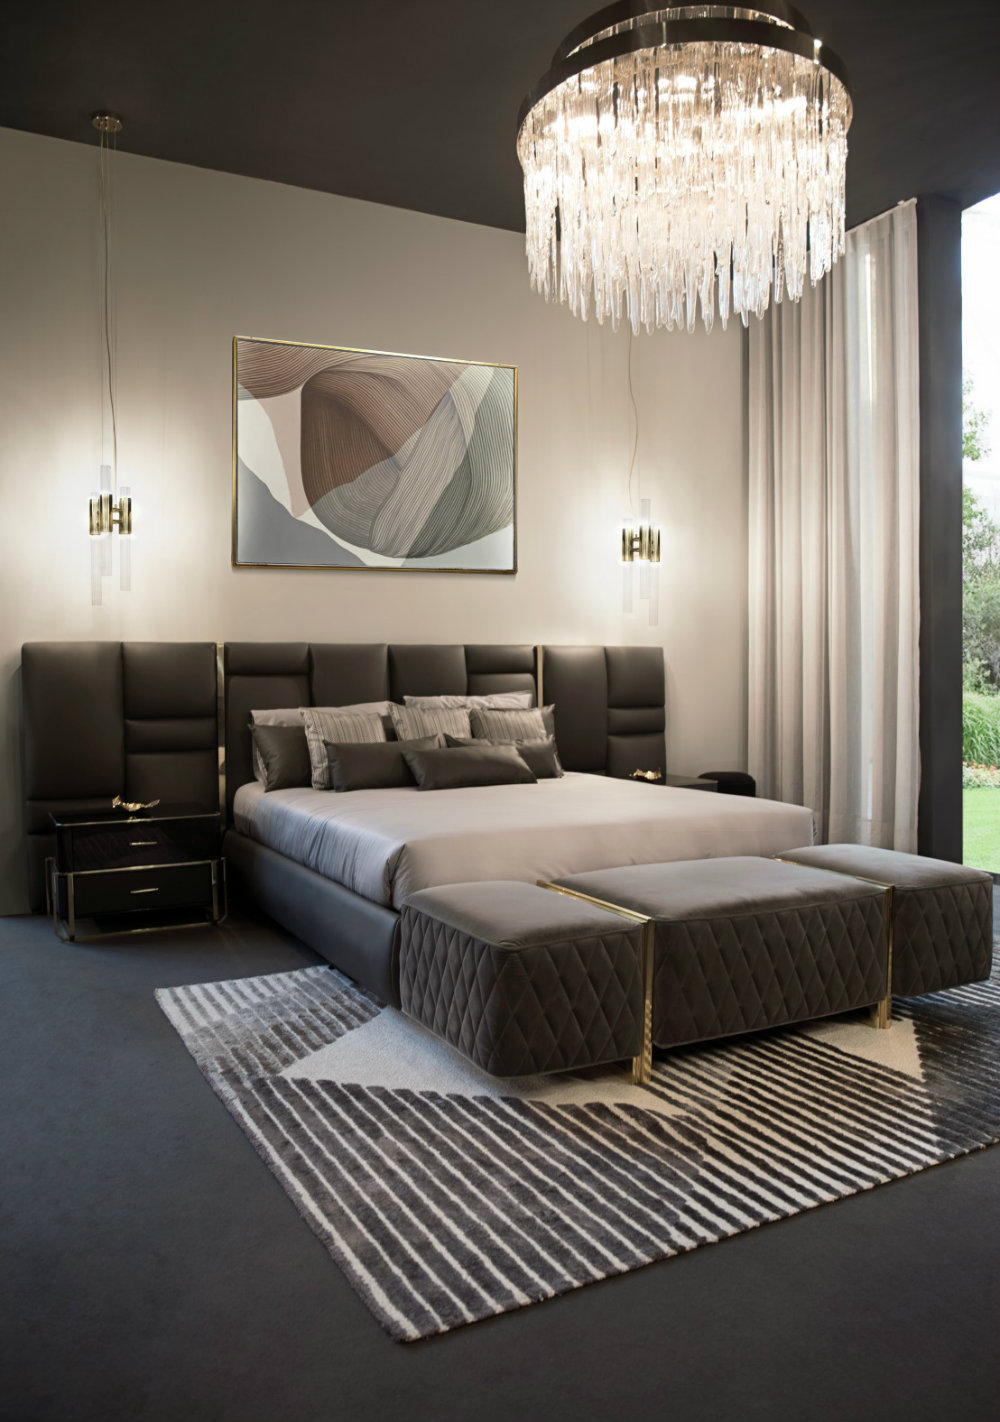 Bedroom Lighting Ideas To Set The Mood Modern Chandeliers